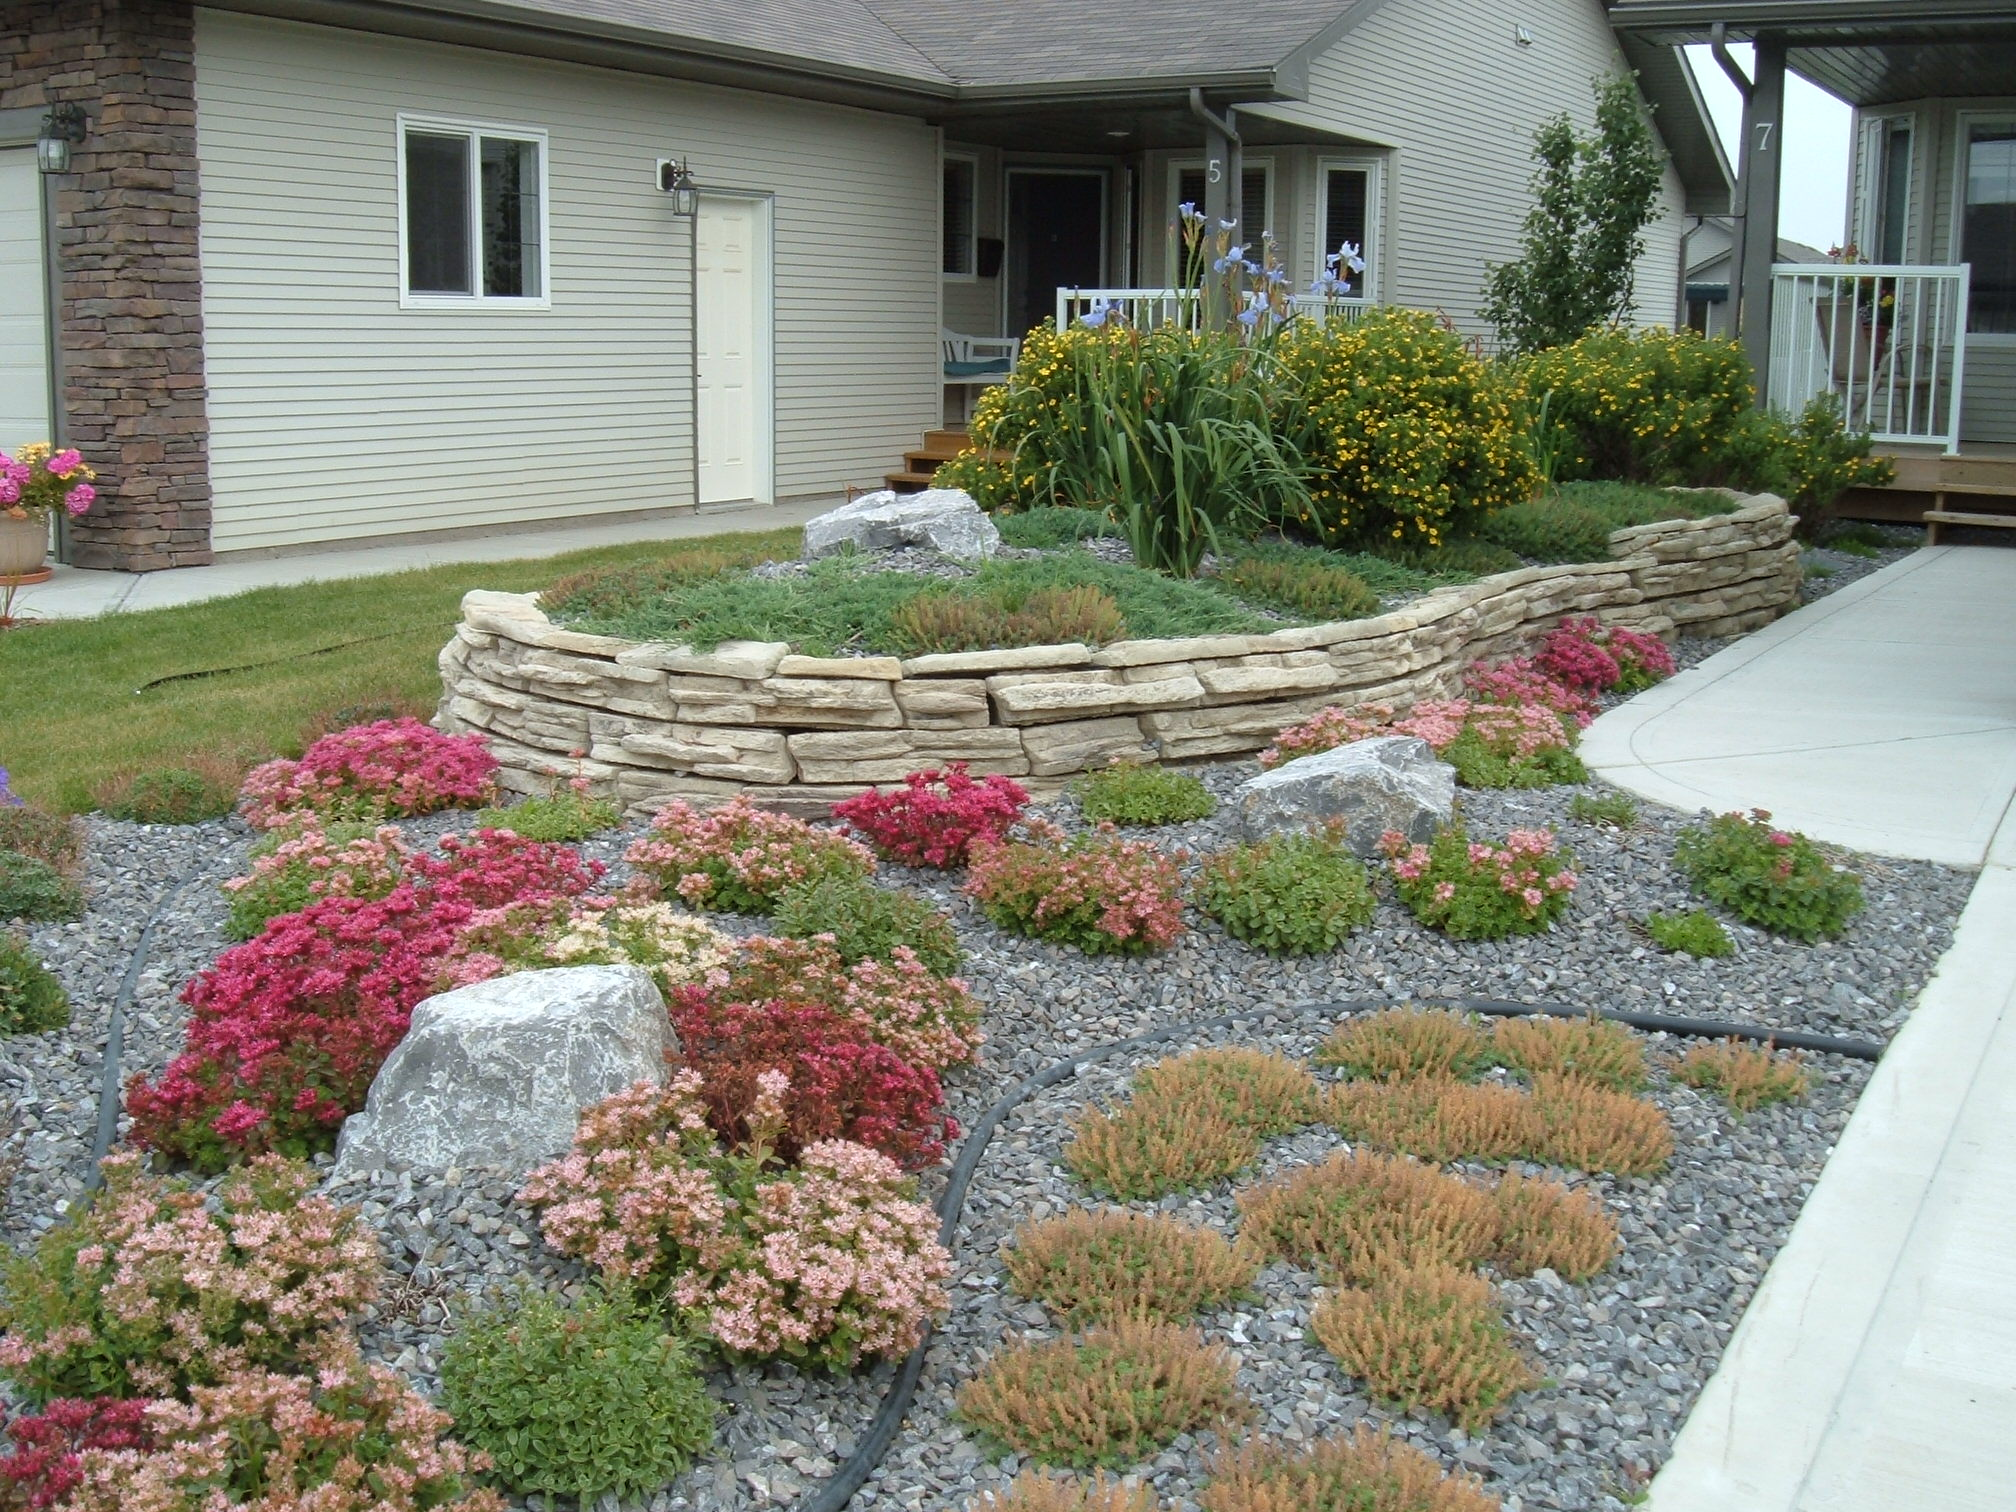 1000 images about drought resistant garden ideas on pinterest for Creative garden design 805